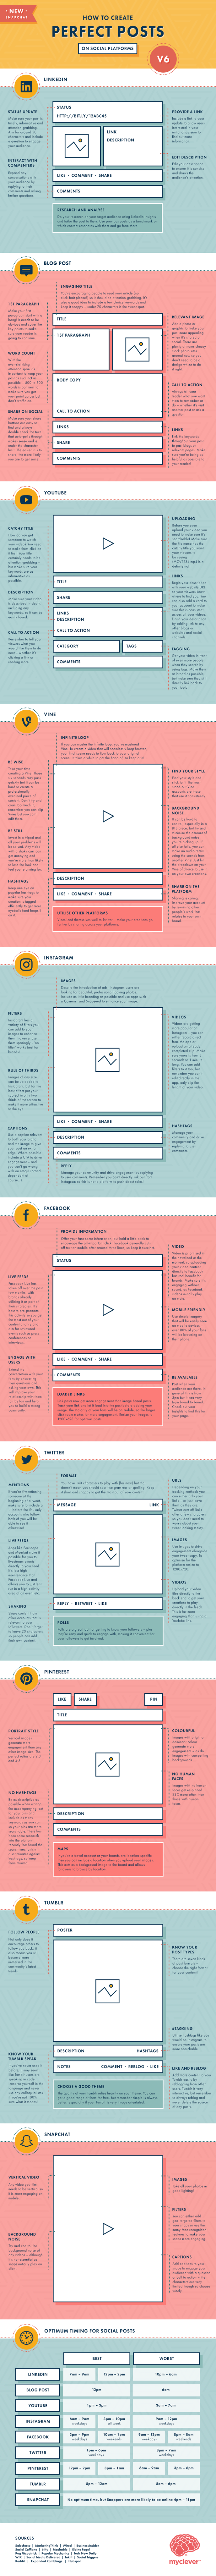 Crafting the Perfect Social Posts Infographic